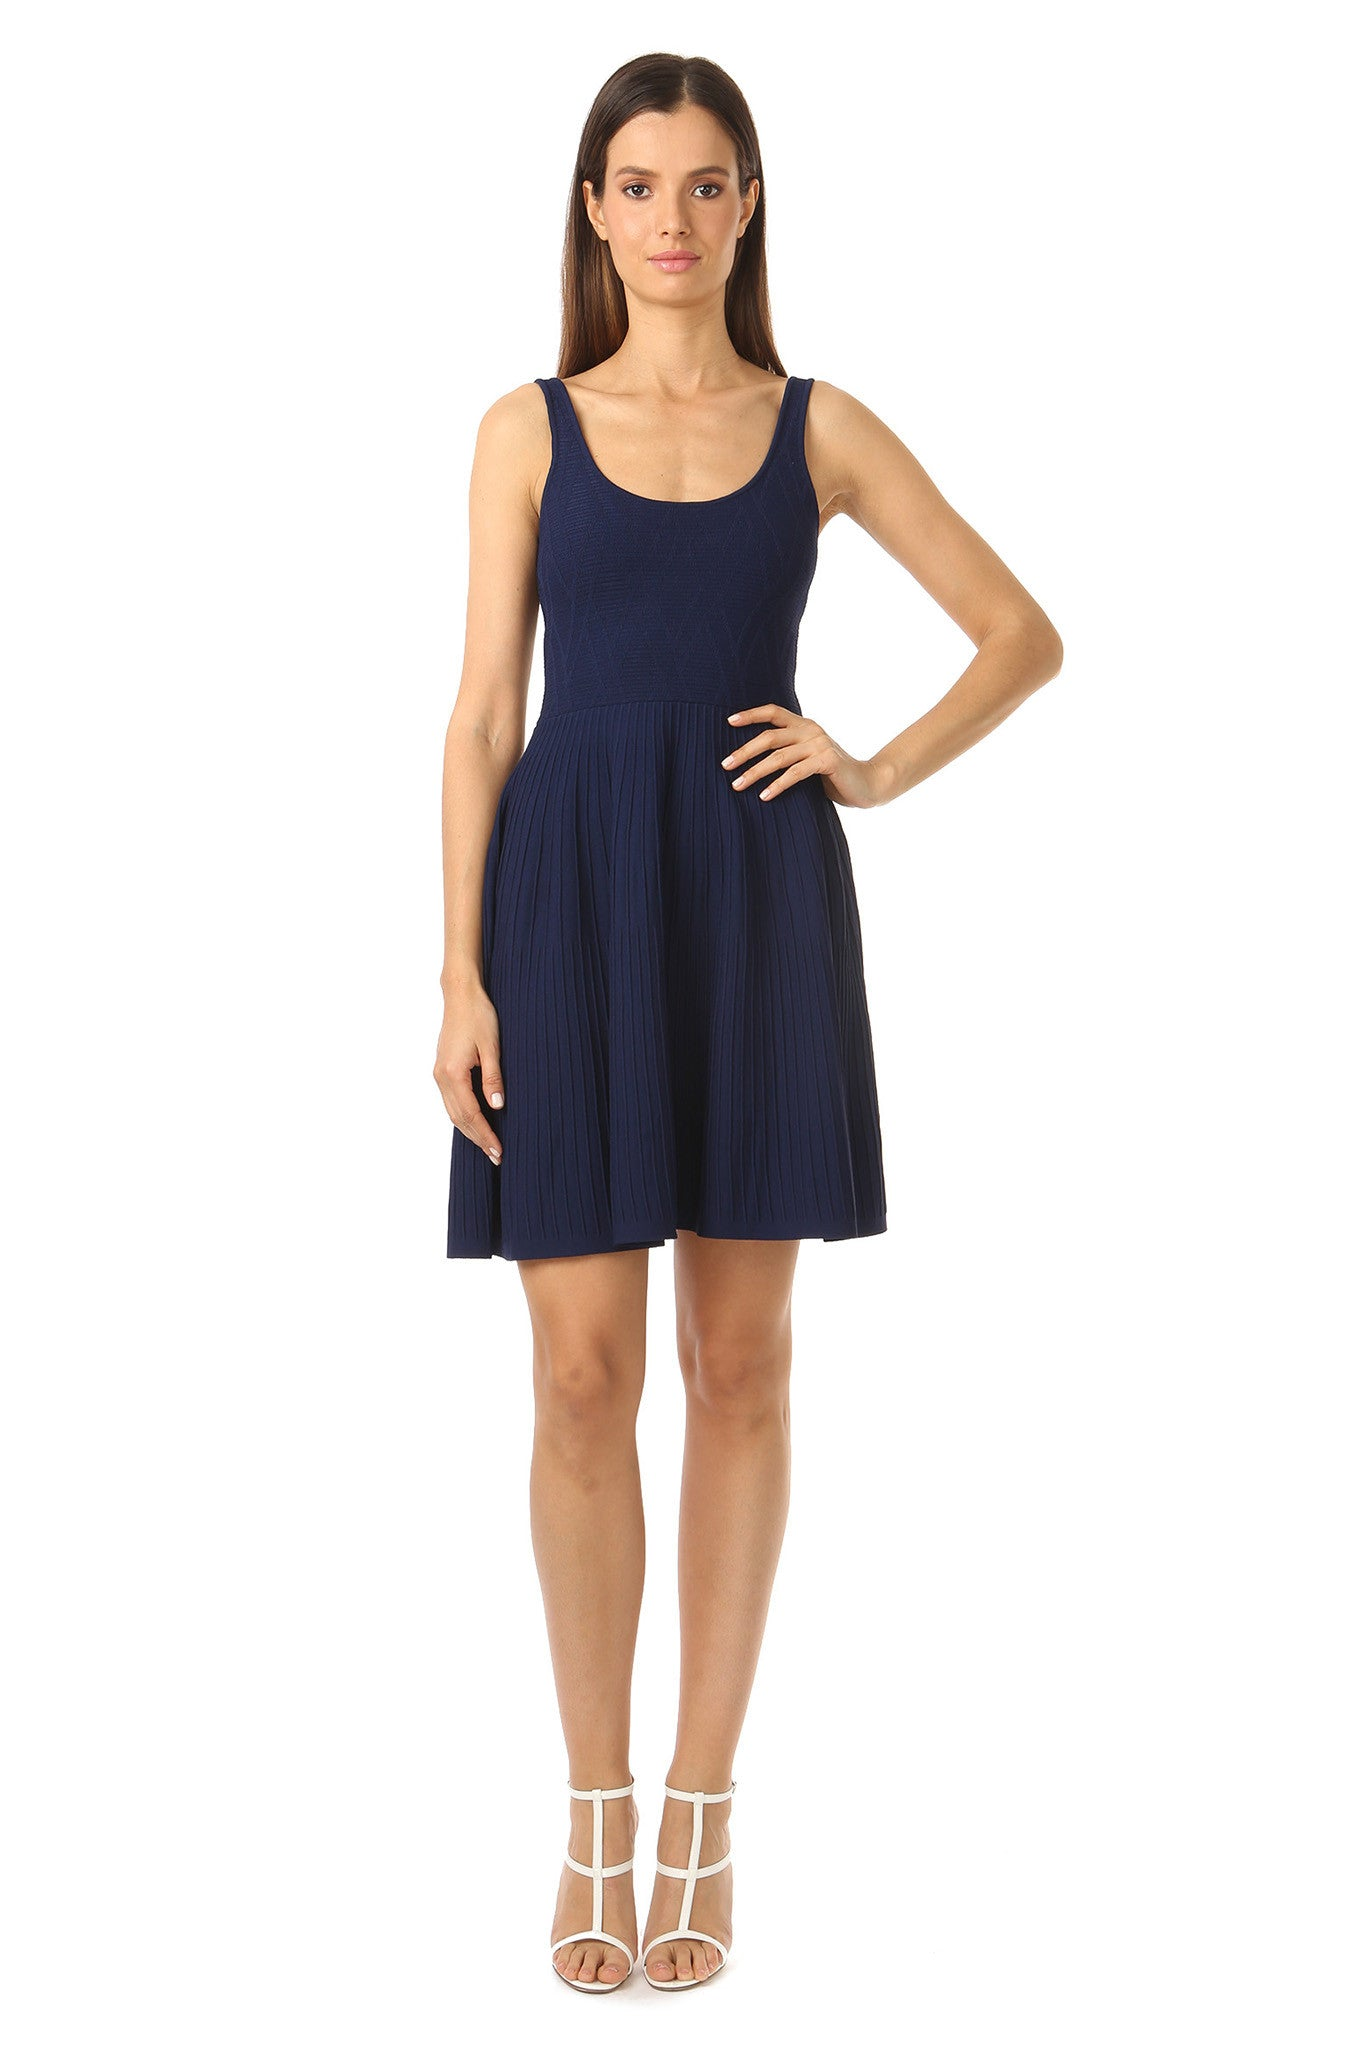 Jay Godfrey Knit Navy Fit and Flare Dress - Front View